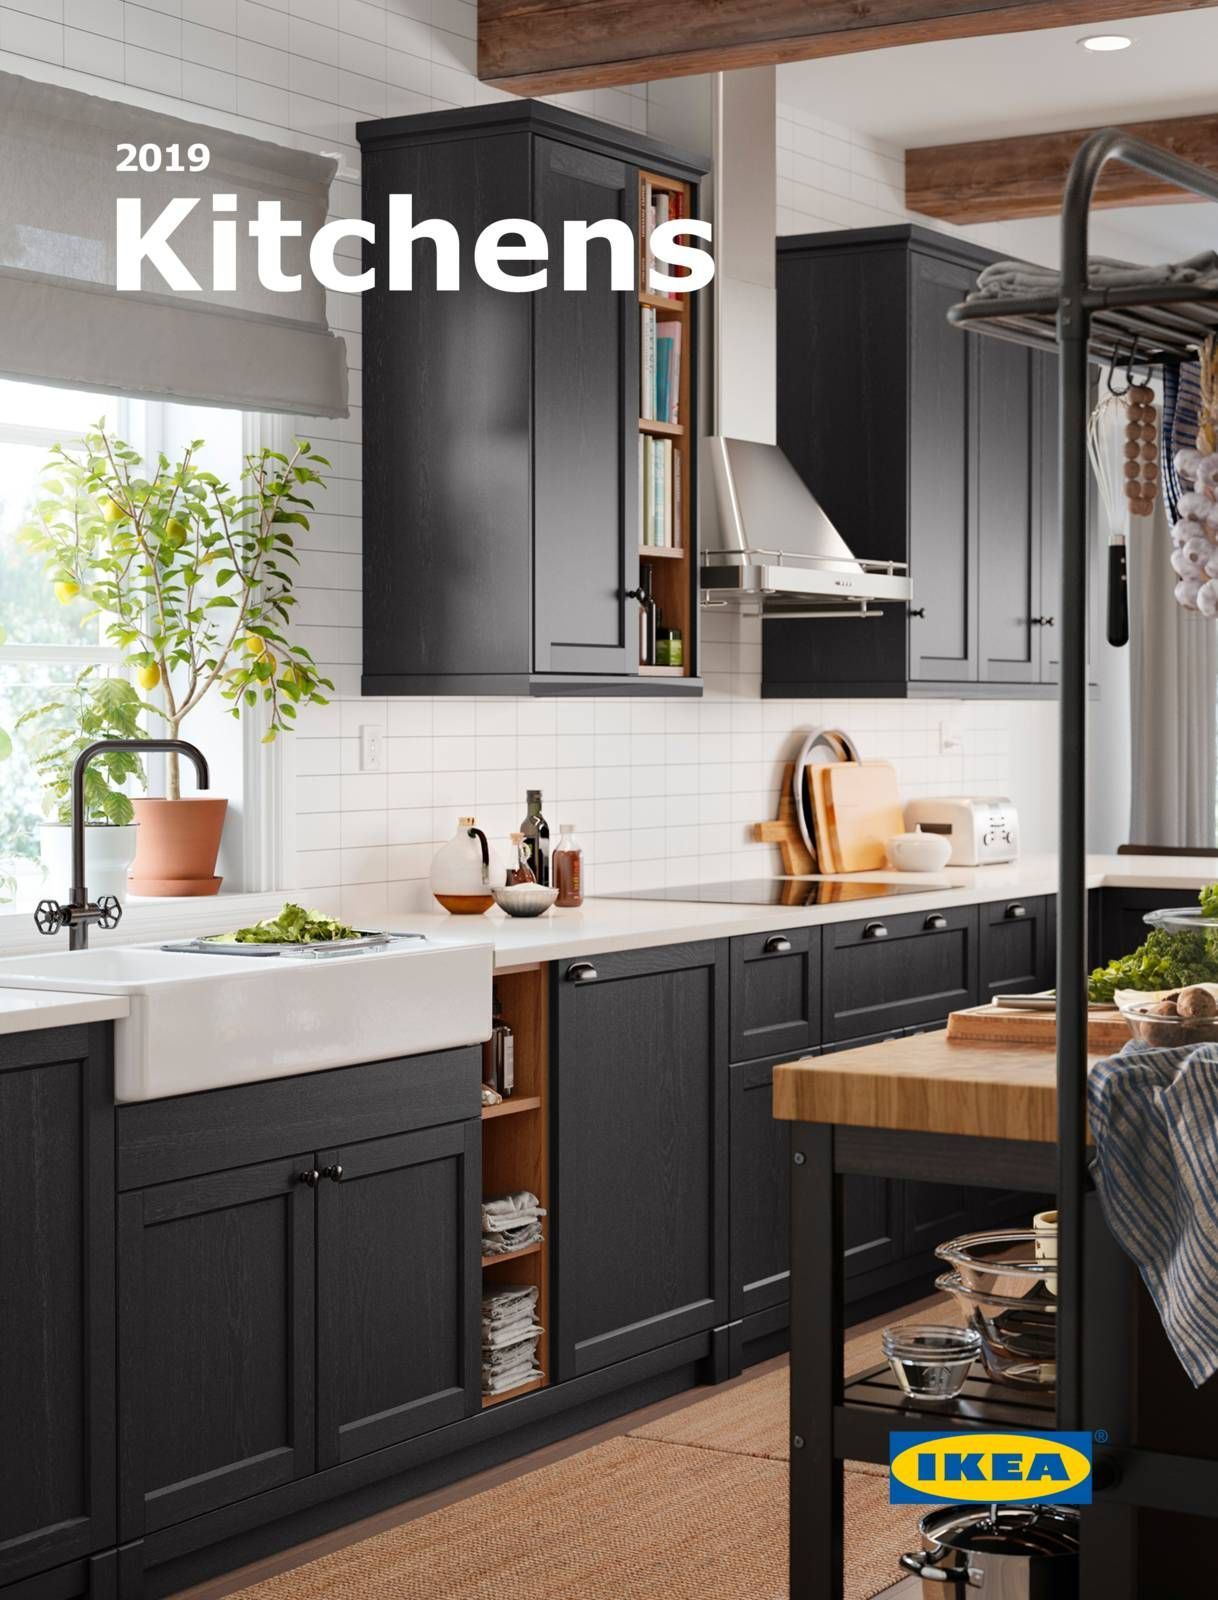 Fabulous KITCHENS 2019 - IKEA Kitchen Brochure 2019 | DIY in 2019 | Ikea #BT42